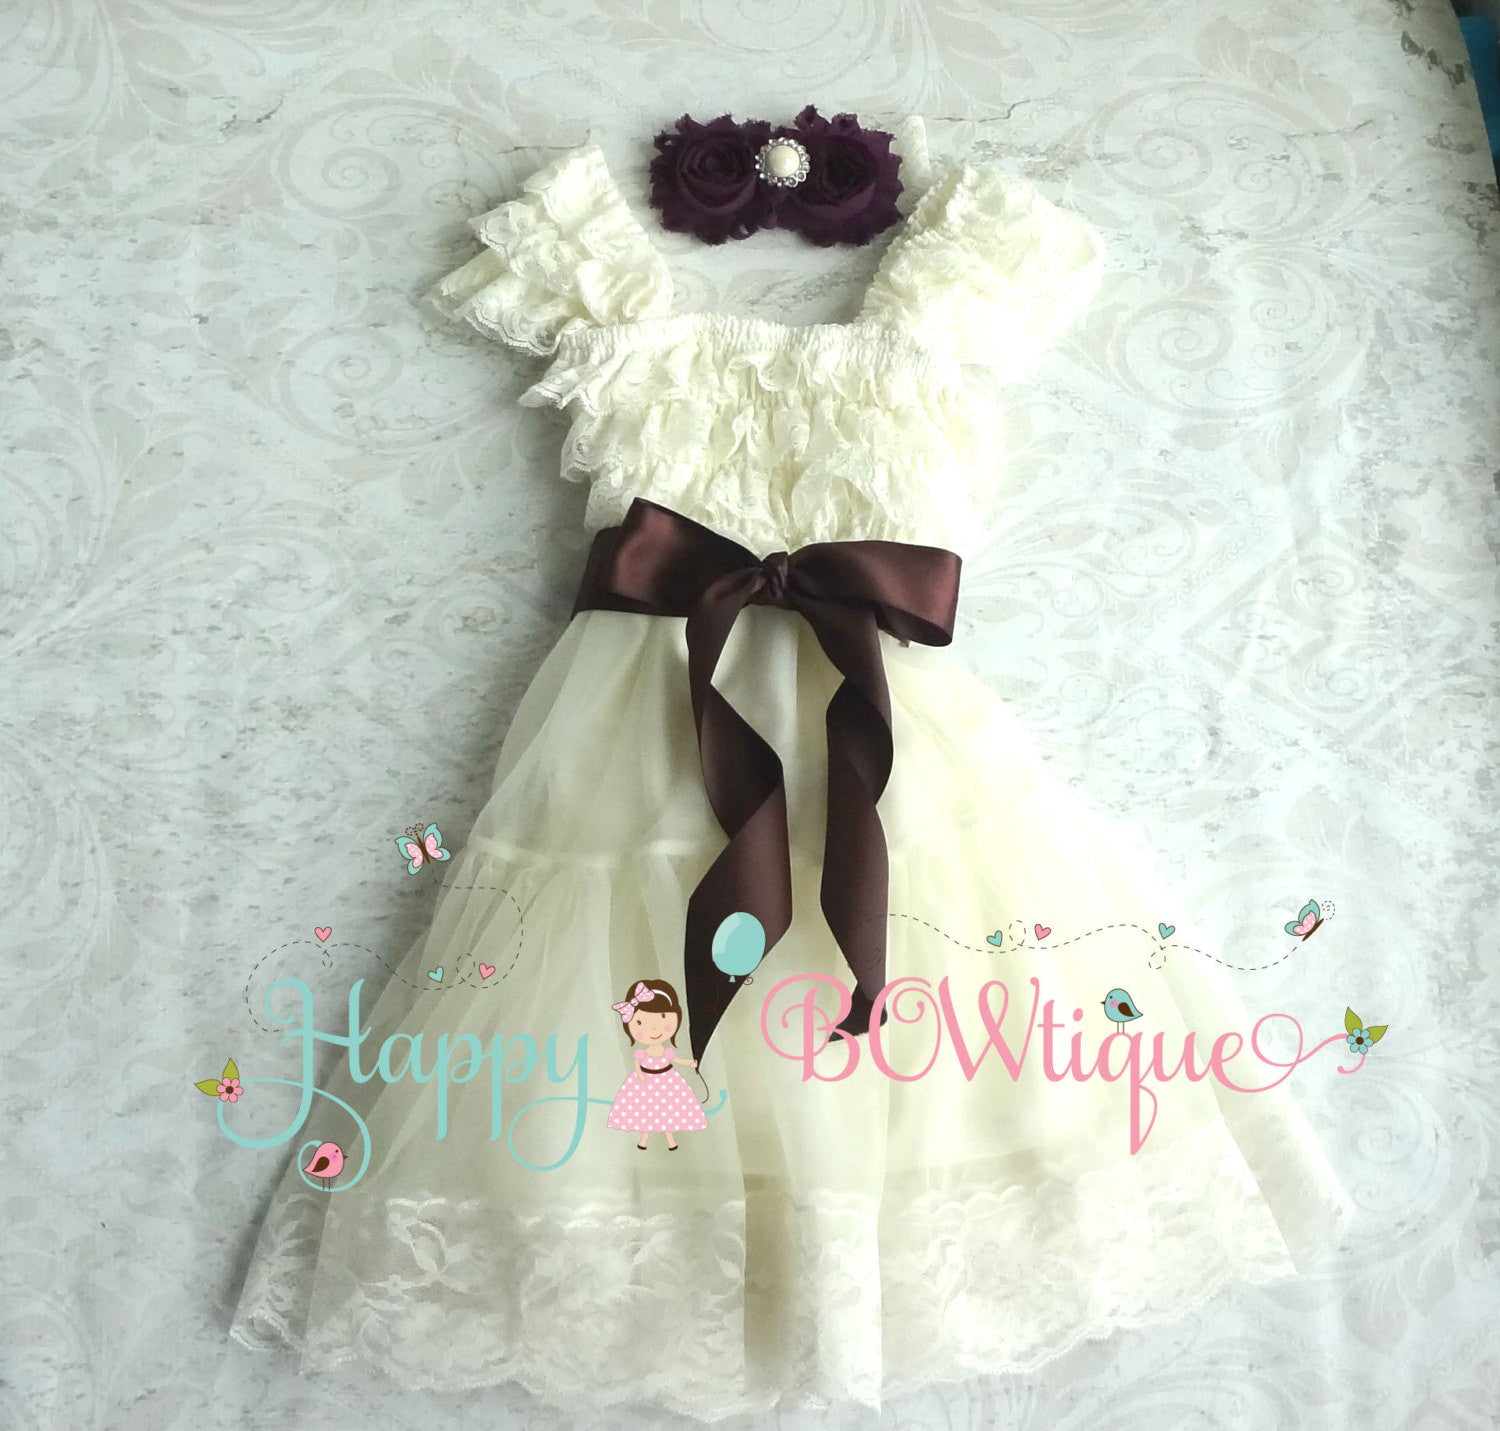 Ivory Plum Girl's Dress / Dark Ivory Plum Chiffon Lace Dress set - Happy BOWtique - children's clothing, Baby Girl clothing